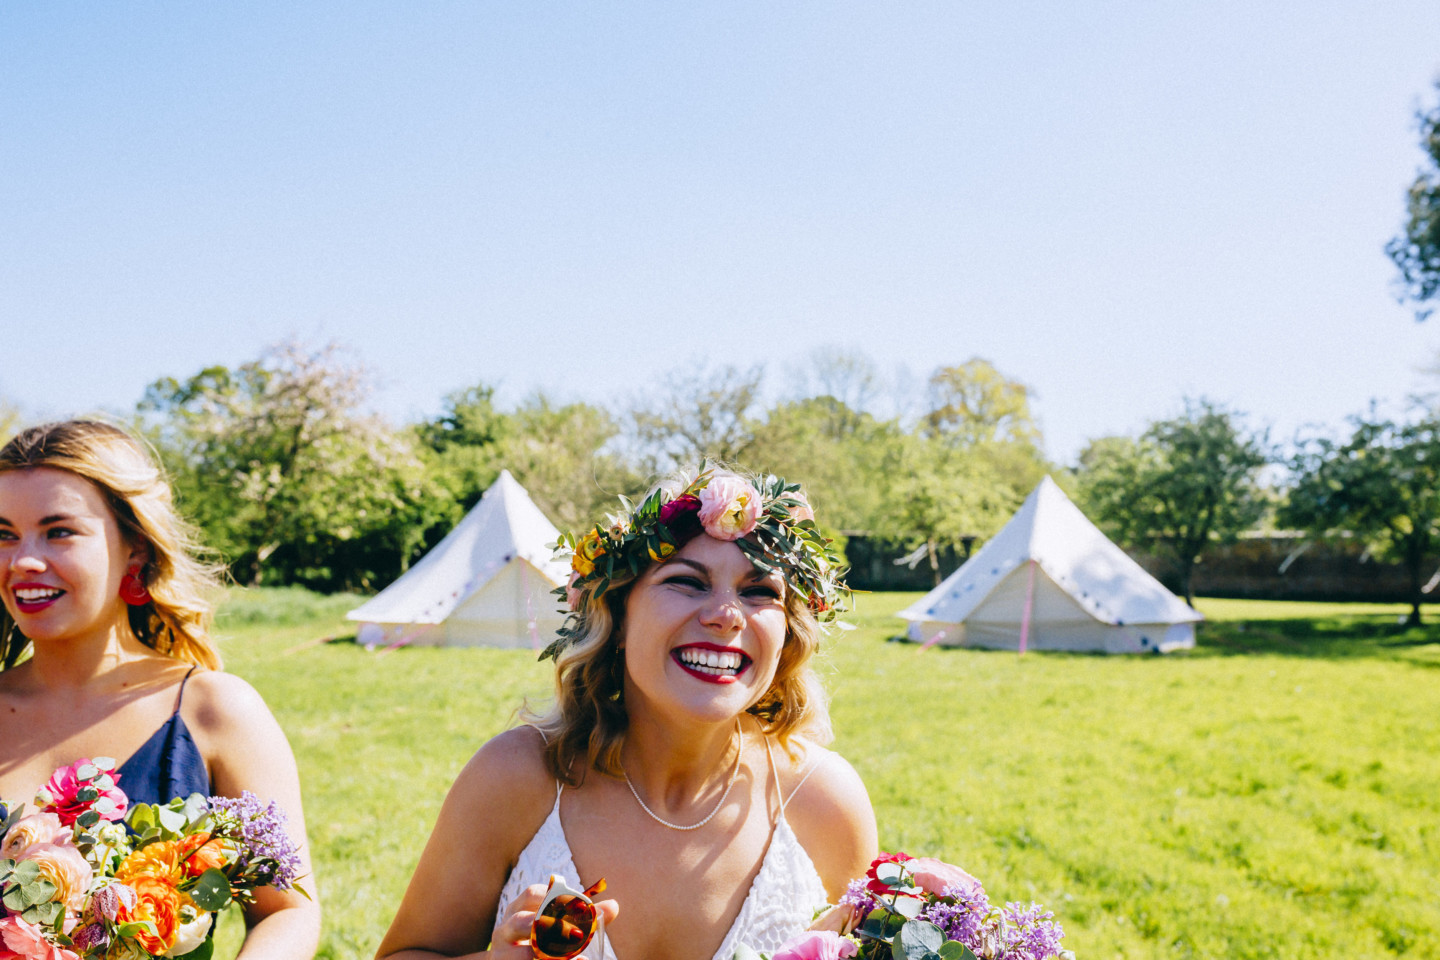 Bride stood infant of bell tent village